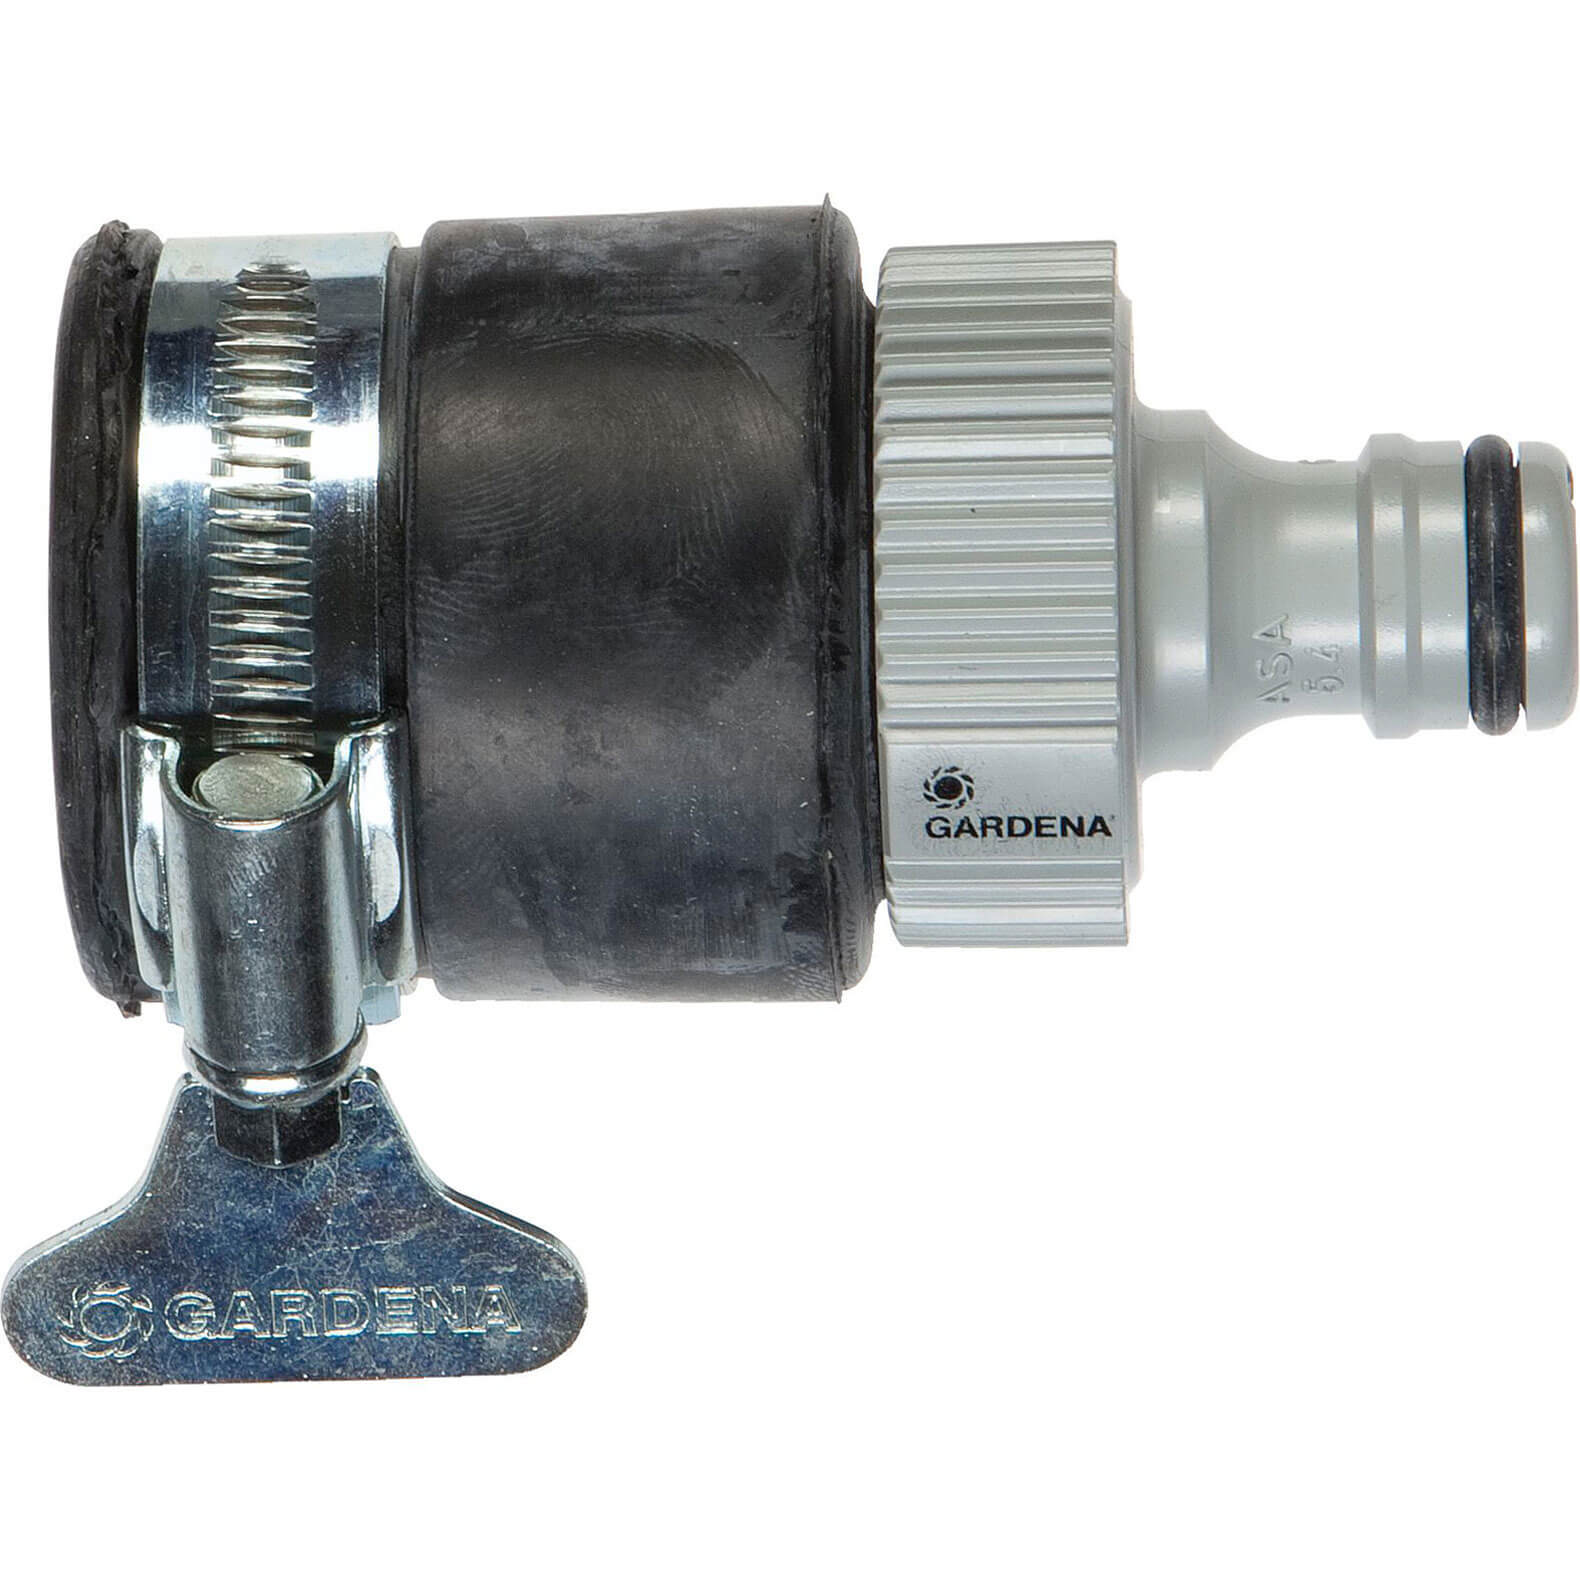 Gardena Round Tap Hose Connector with 15 to 20mm External